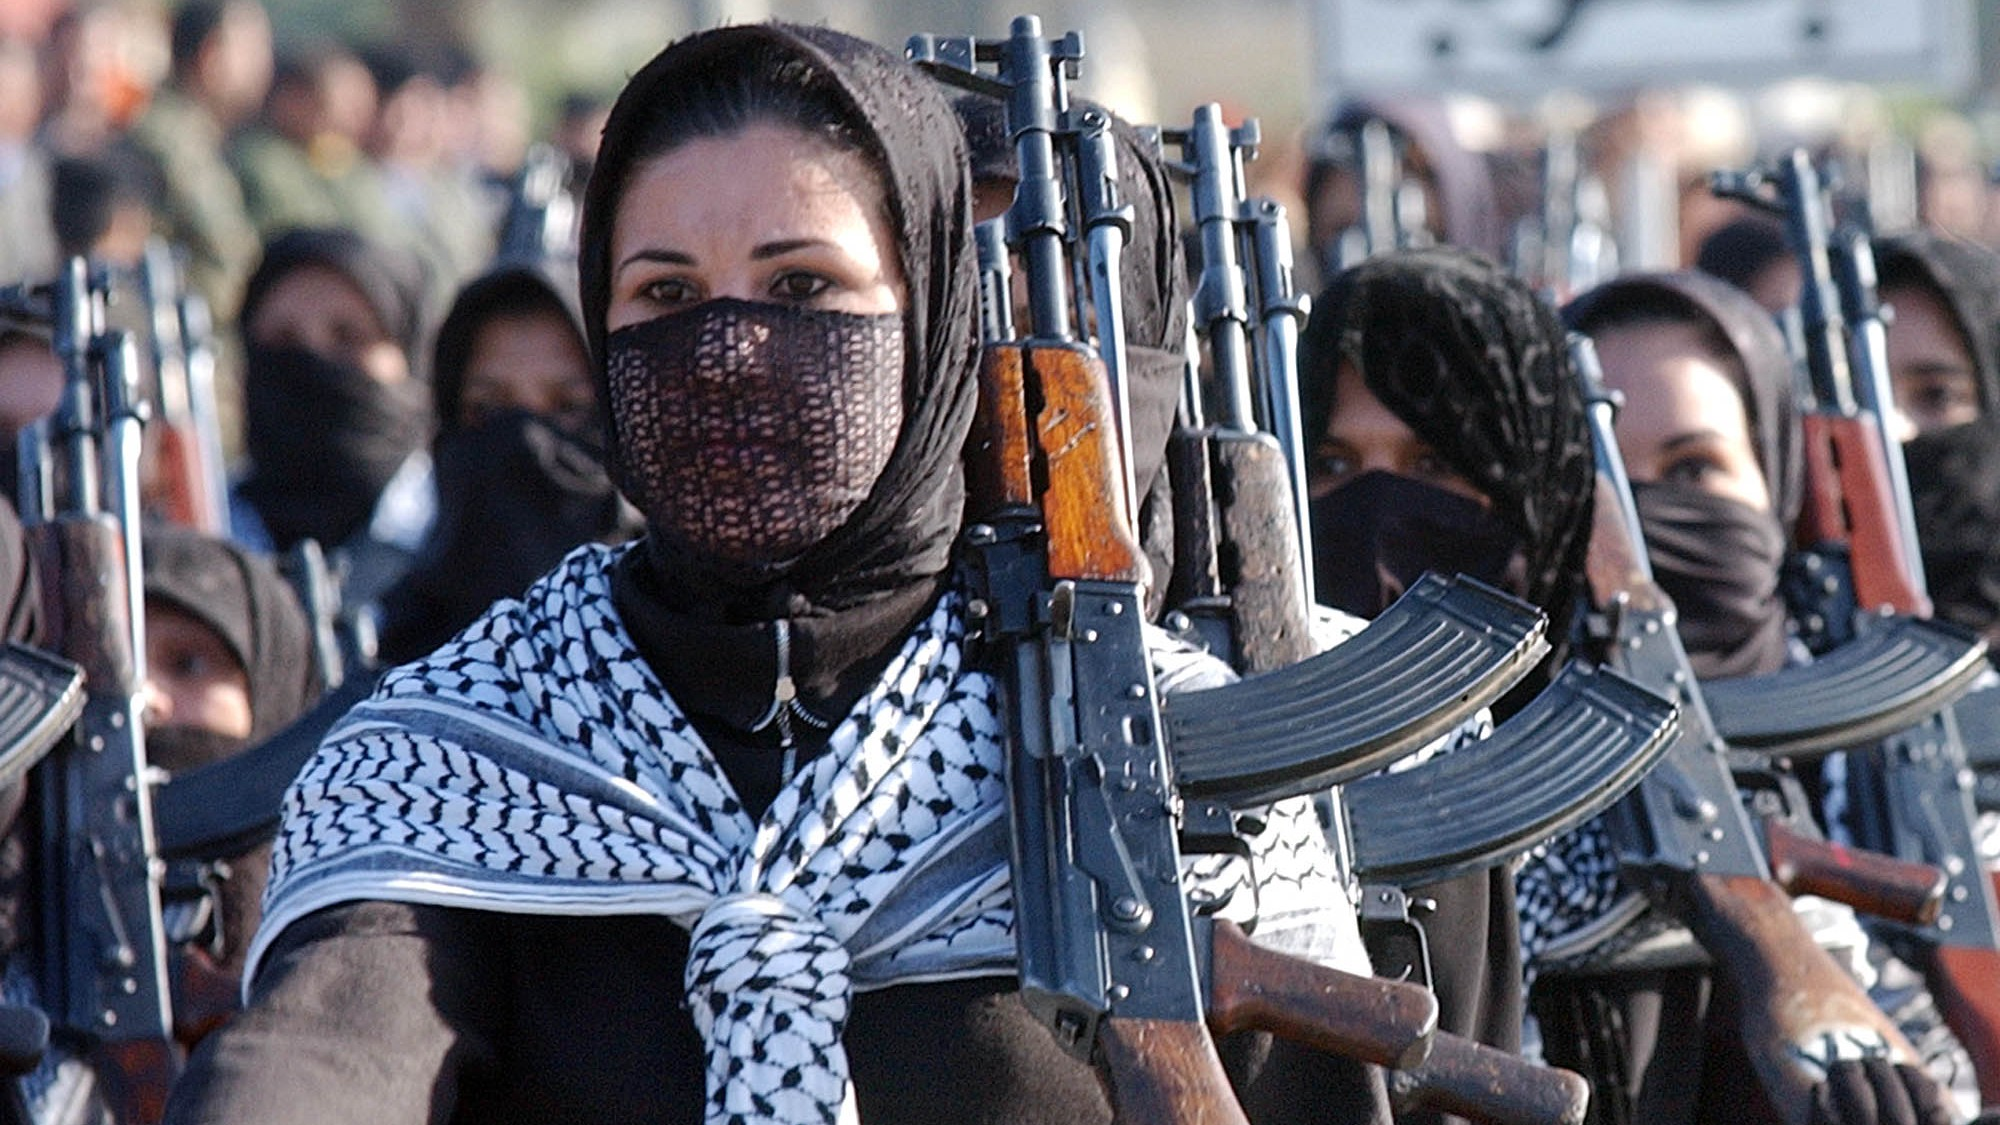 Iraqi women army volunteers holding AK-47 assault rifles march during a military parade held in Diala province 70 Kilometers/50 miles northeast of Baghdad, Iraq Tuesday, Jan. 7, 2003. Thousands of volunteers participated in the parade to mark the 82nd anniversary of the founding of the Iraqi army. (AP Photo/Hussein Malla)